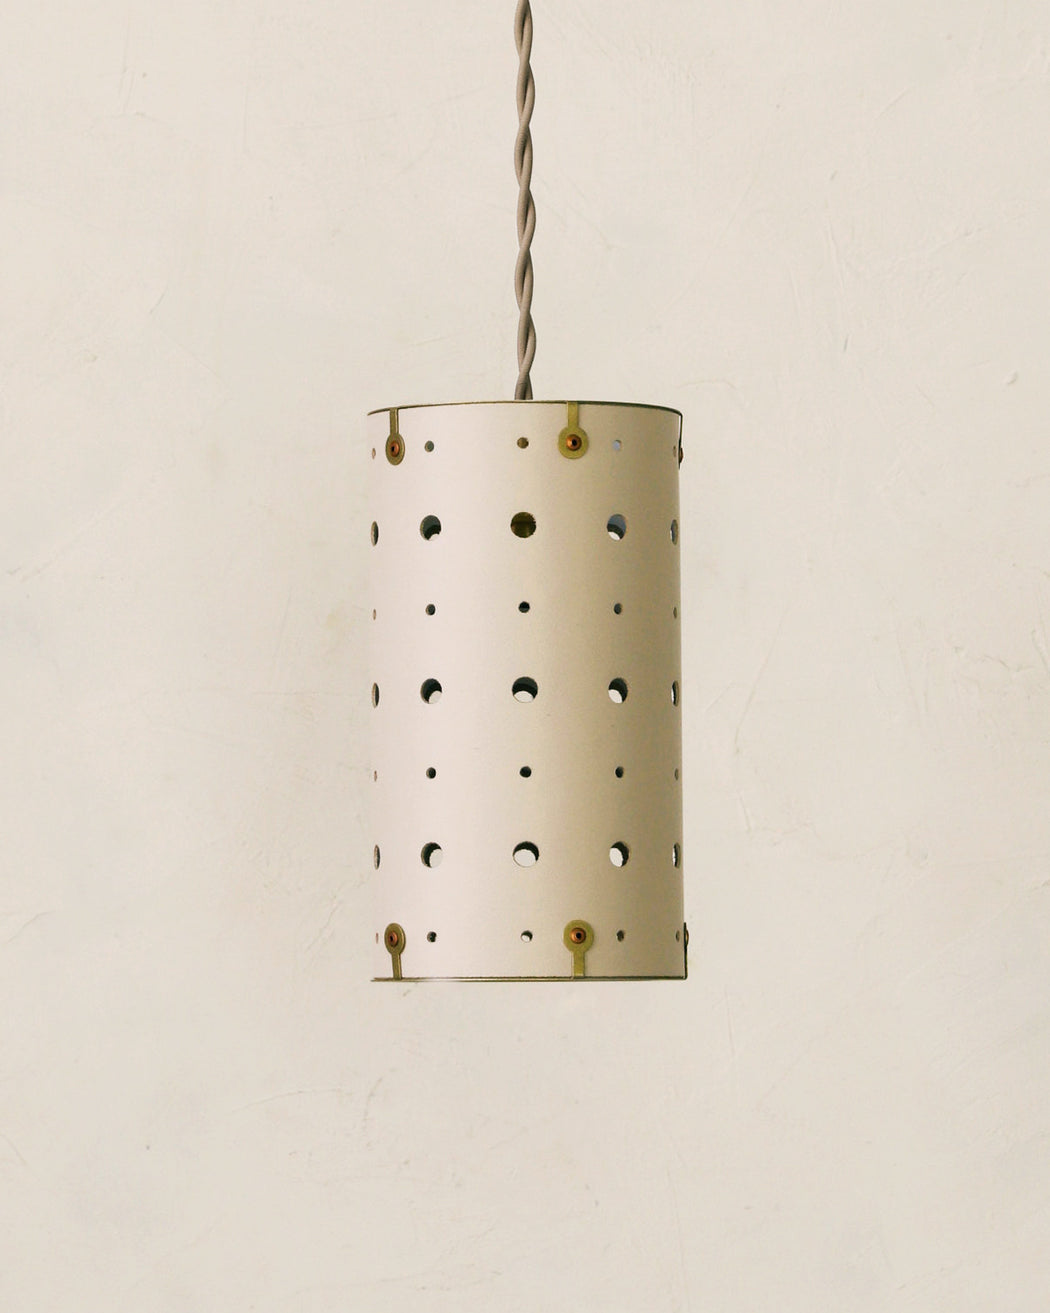 LOSTINE DOGWOOD LEATHER CELESTE PENDANT LIGHTING